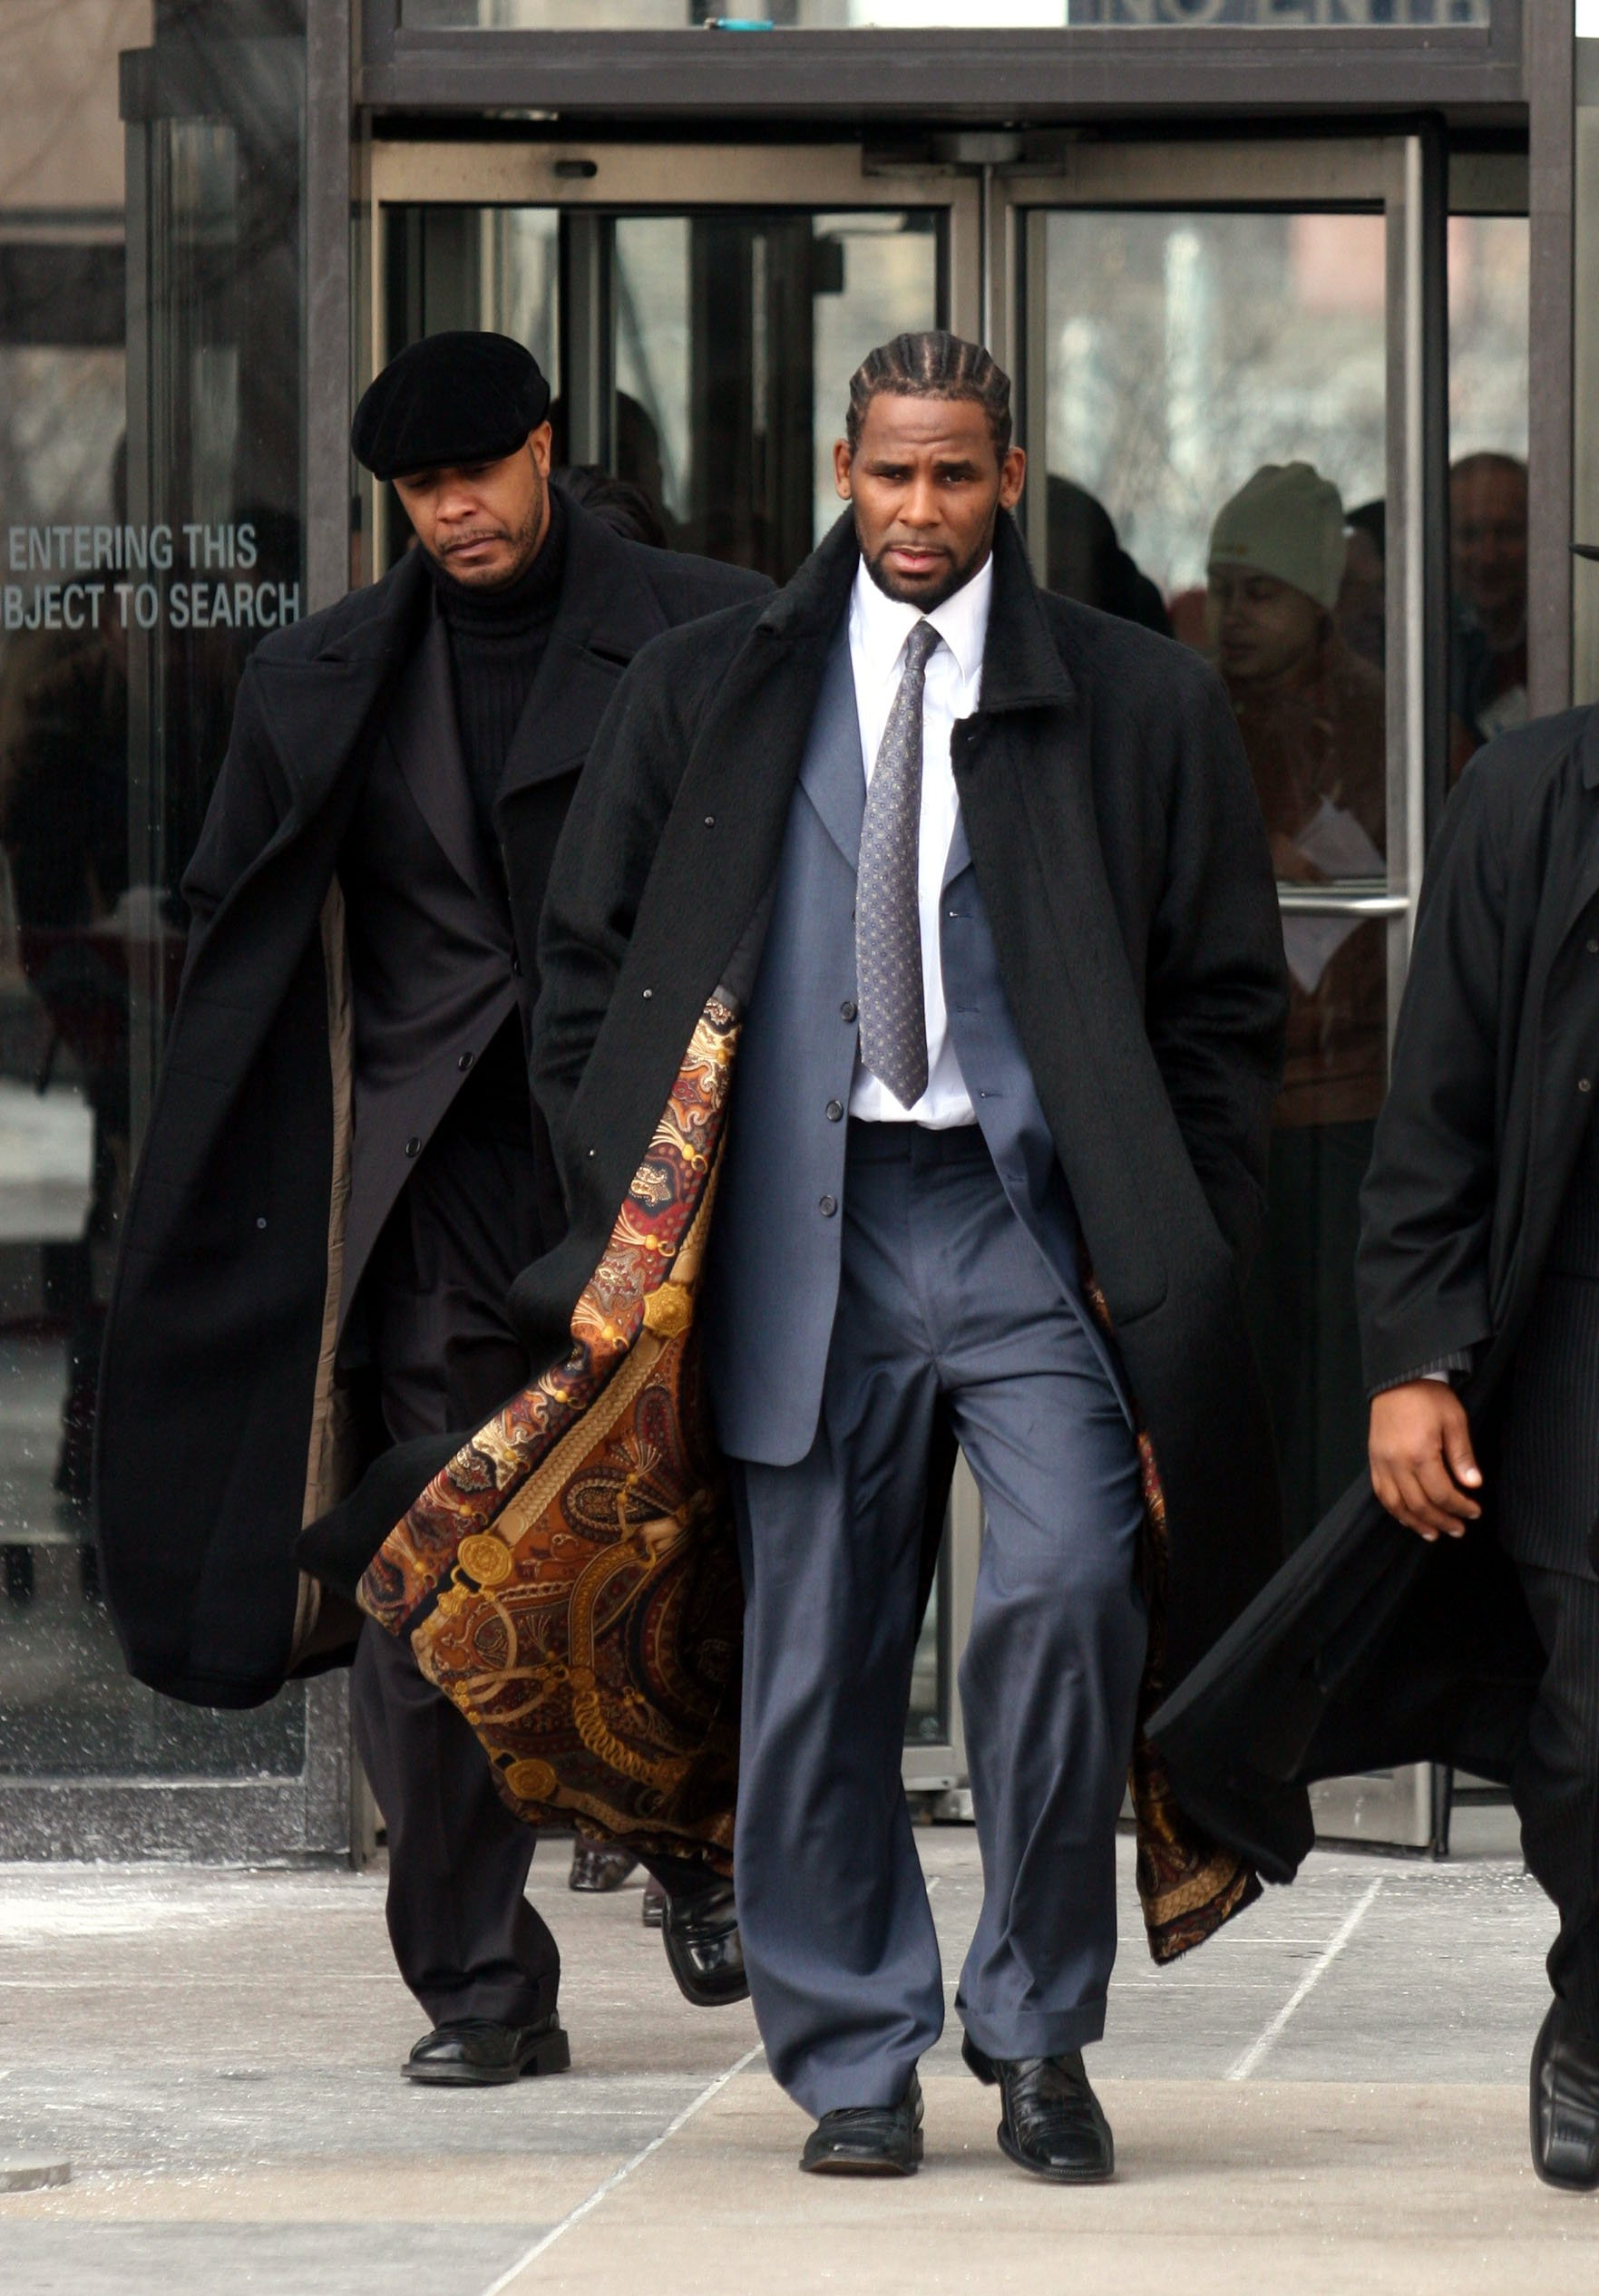 R. Kelly leaving Cook County Jail after his charges in 2007 | Source: Getty Images/GlobalImagesUkraine